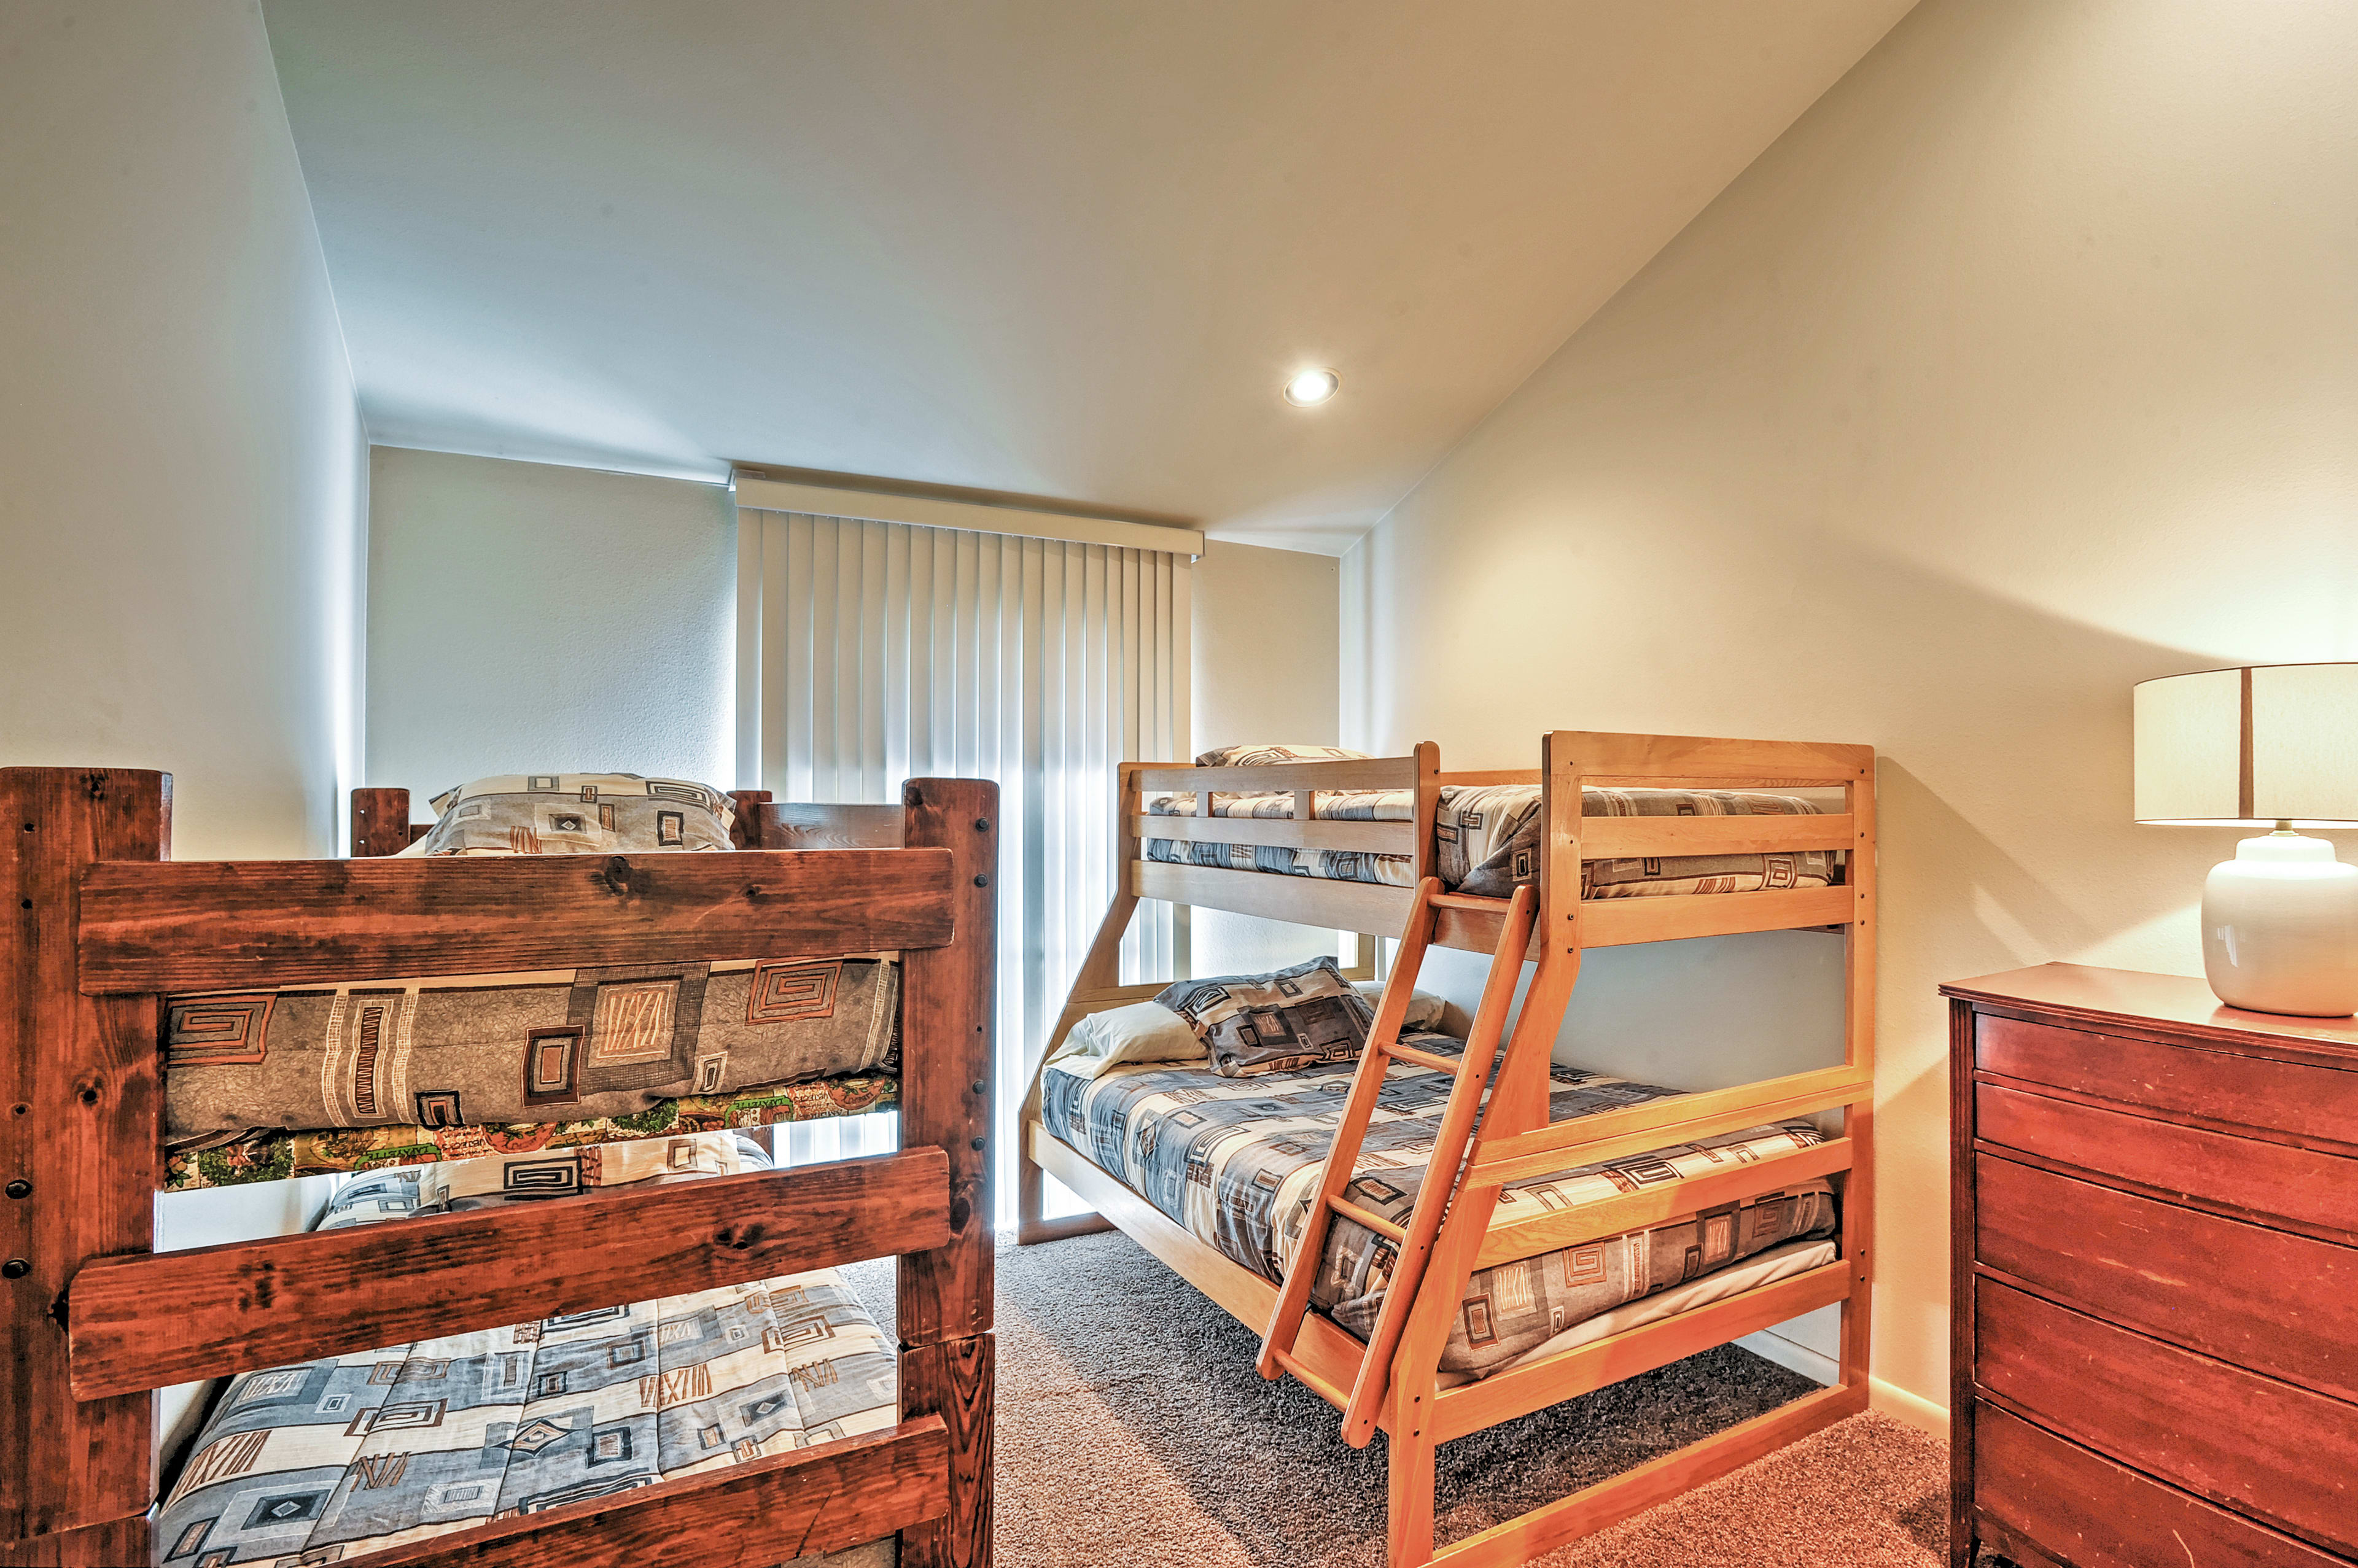 Bedroom 3 | 2 Twin Bunk Beds | Stairs Required